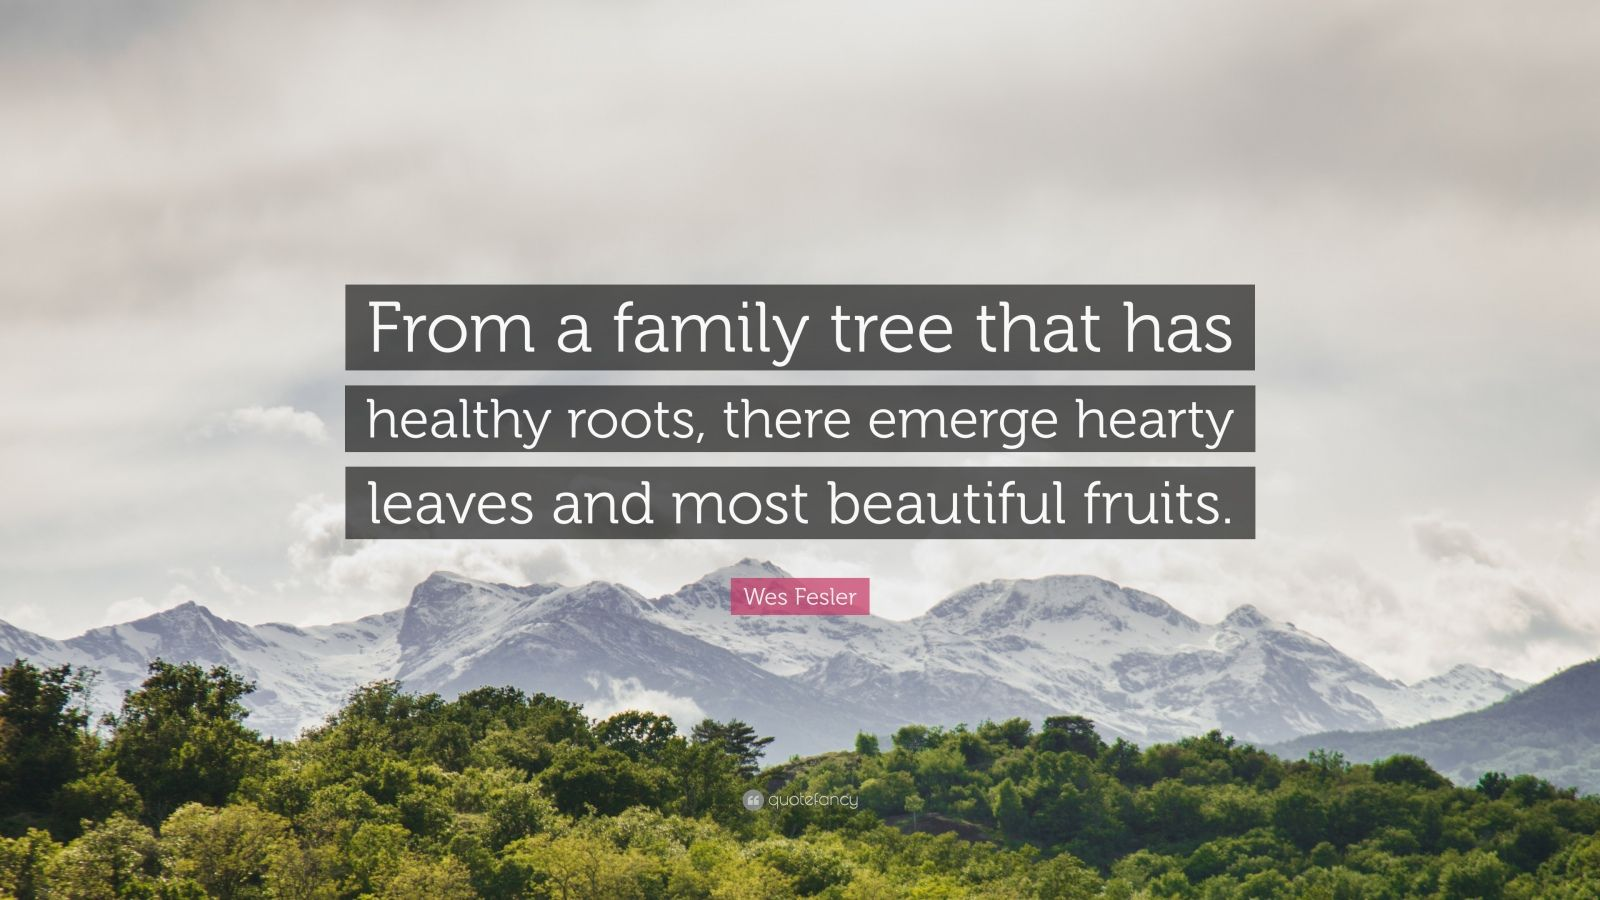 """Wes Fesler Quote: """"From a family tree that has healthy roots, there emerge hearty leaves and most beautiful fruits."""""""